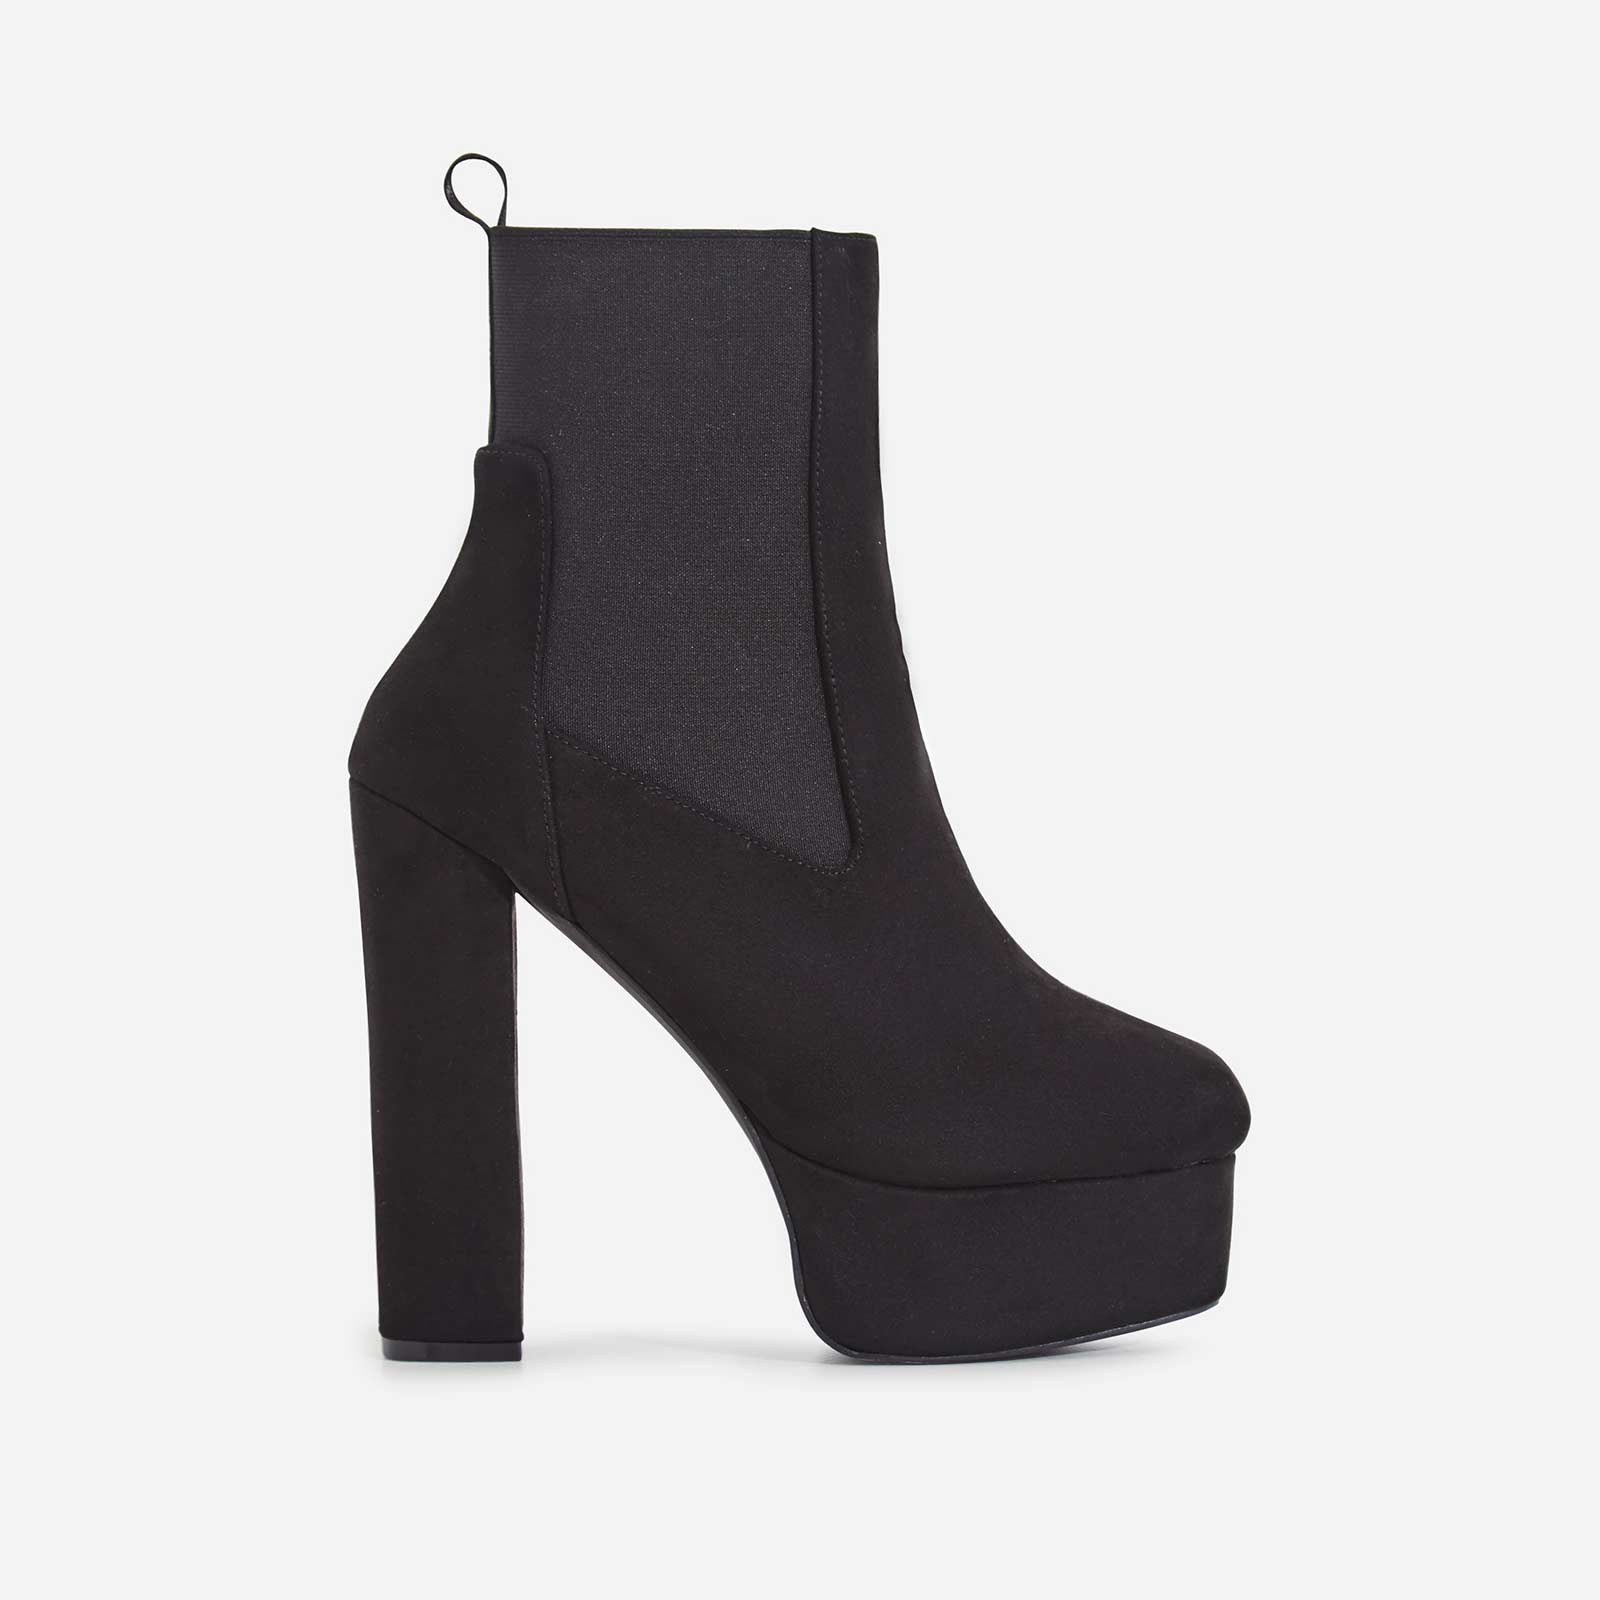 Harleen Square Toe Platform Ankle Biker Boot In Black Faux Suede